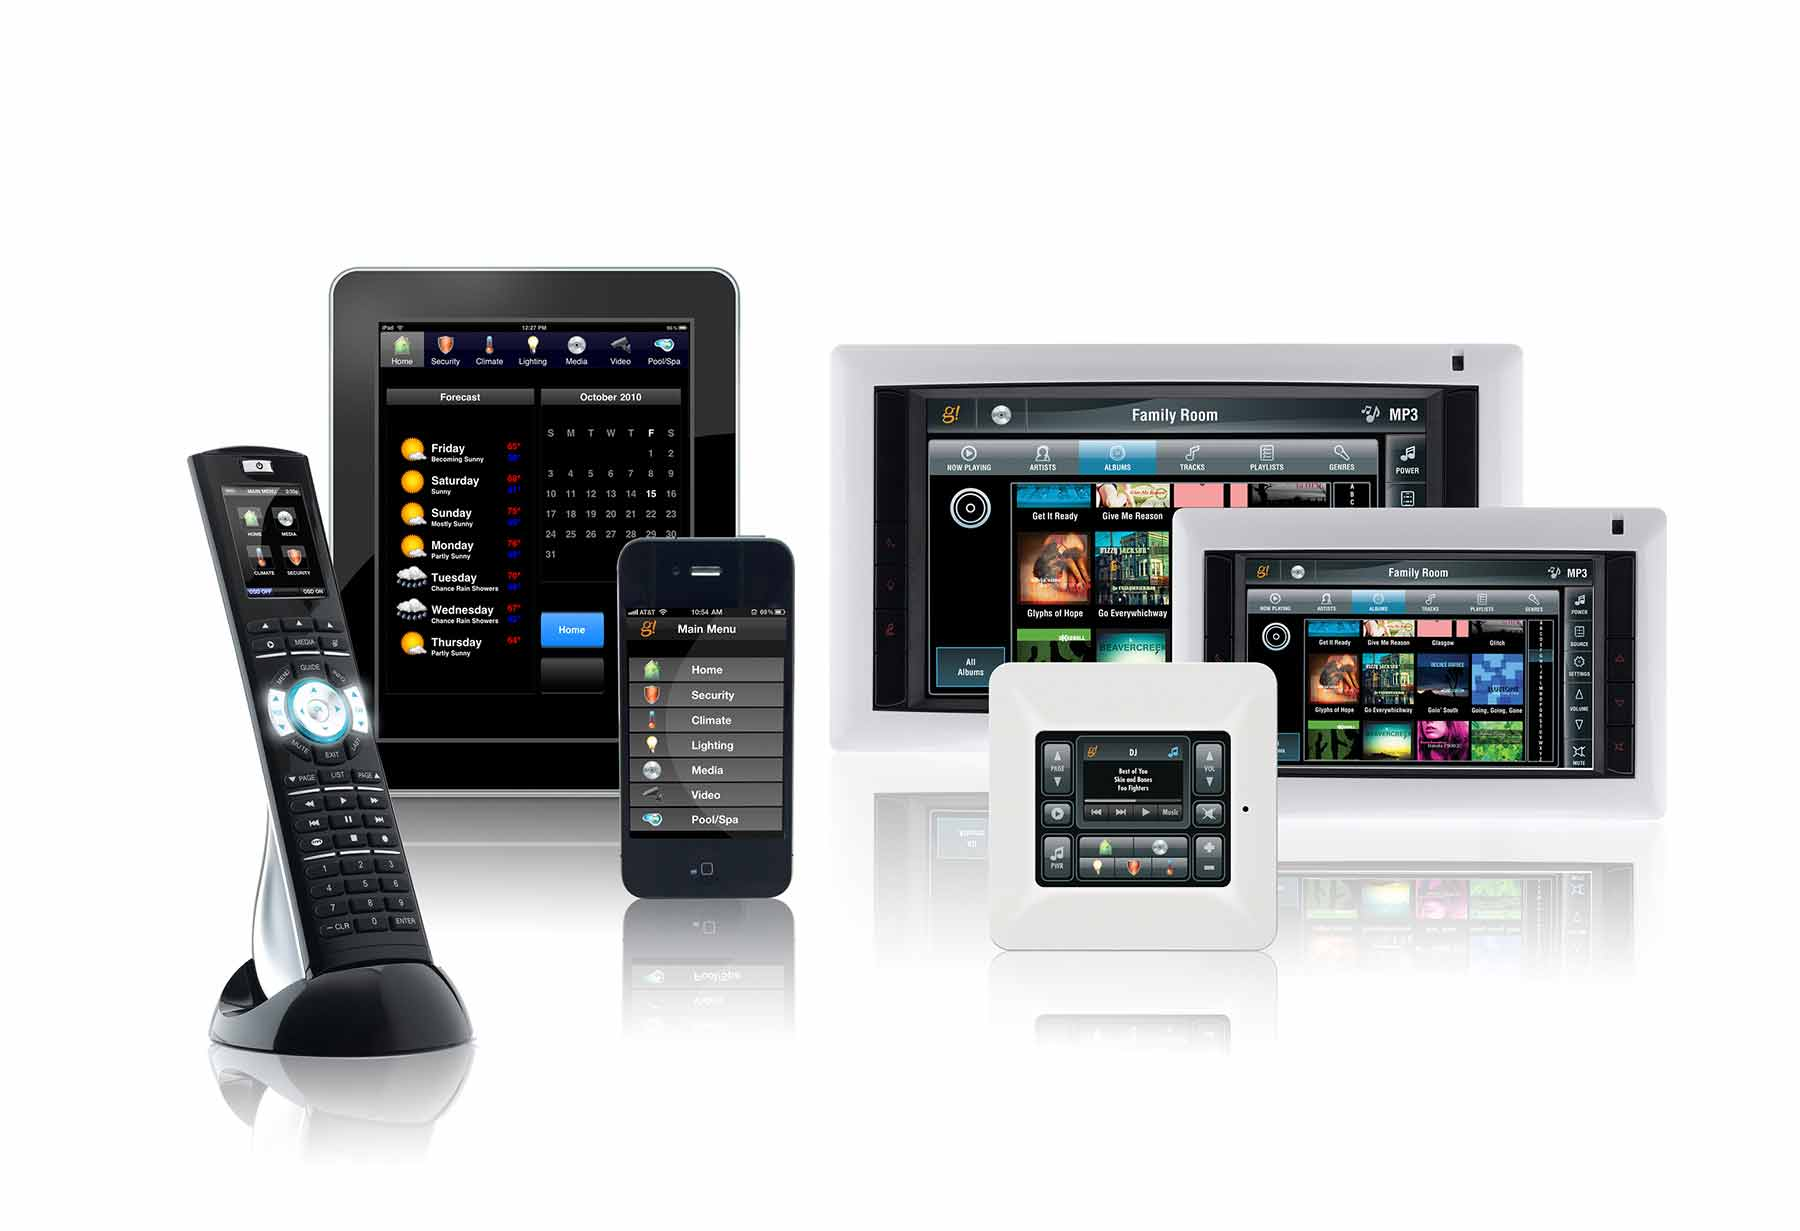 ELAN From state-of-the-art volume controls to award-winning Touch Panels and Touchpads, ELAN has products that can control and access all in-home equipment with ease, including apps for home and remote control via iPhone, iPad or PC. www.elanhomesystems.com